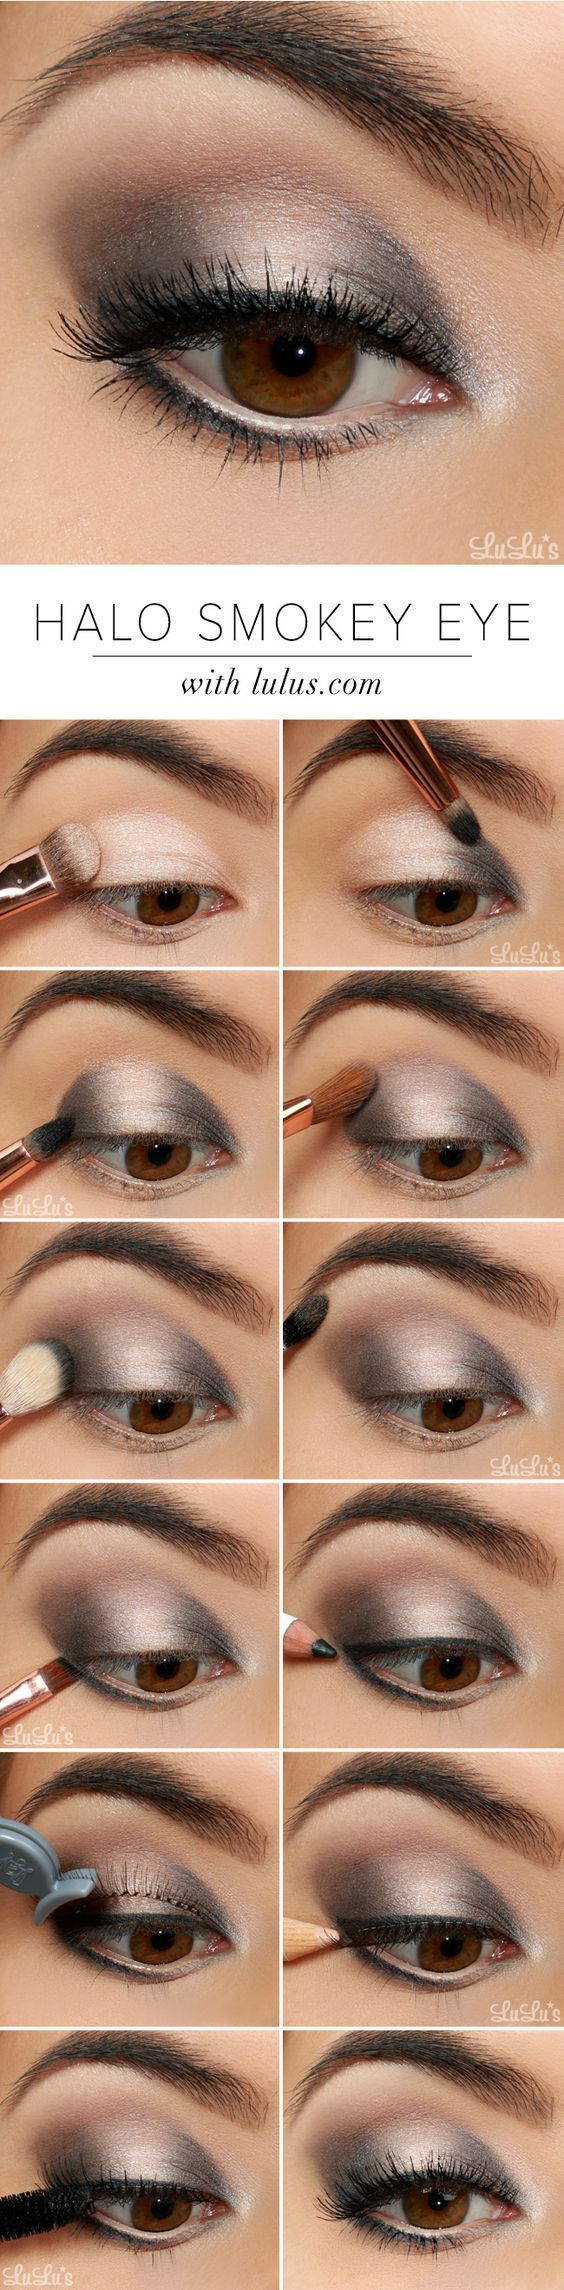 a4ee8db454100868566e6f7366f72eb9 11 Easy Makeup Tutorials You Can Master In Time For New Years Eve